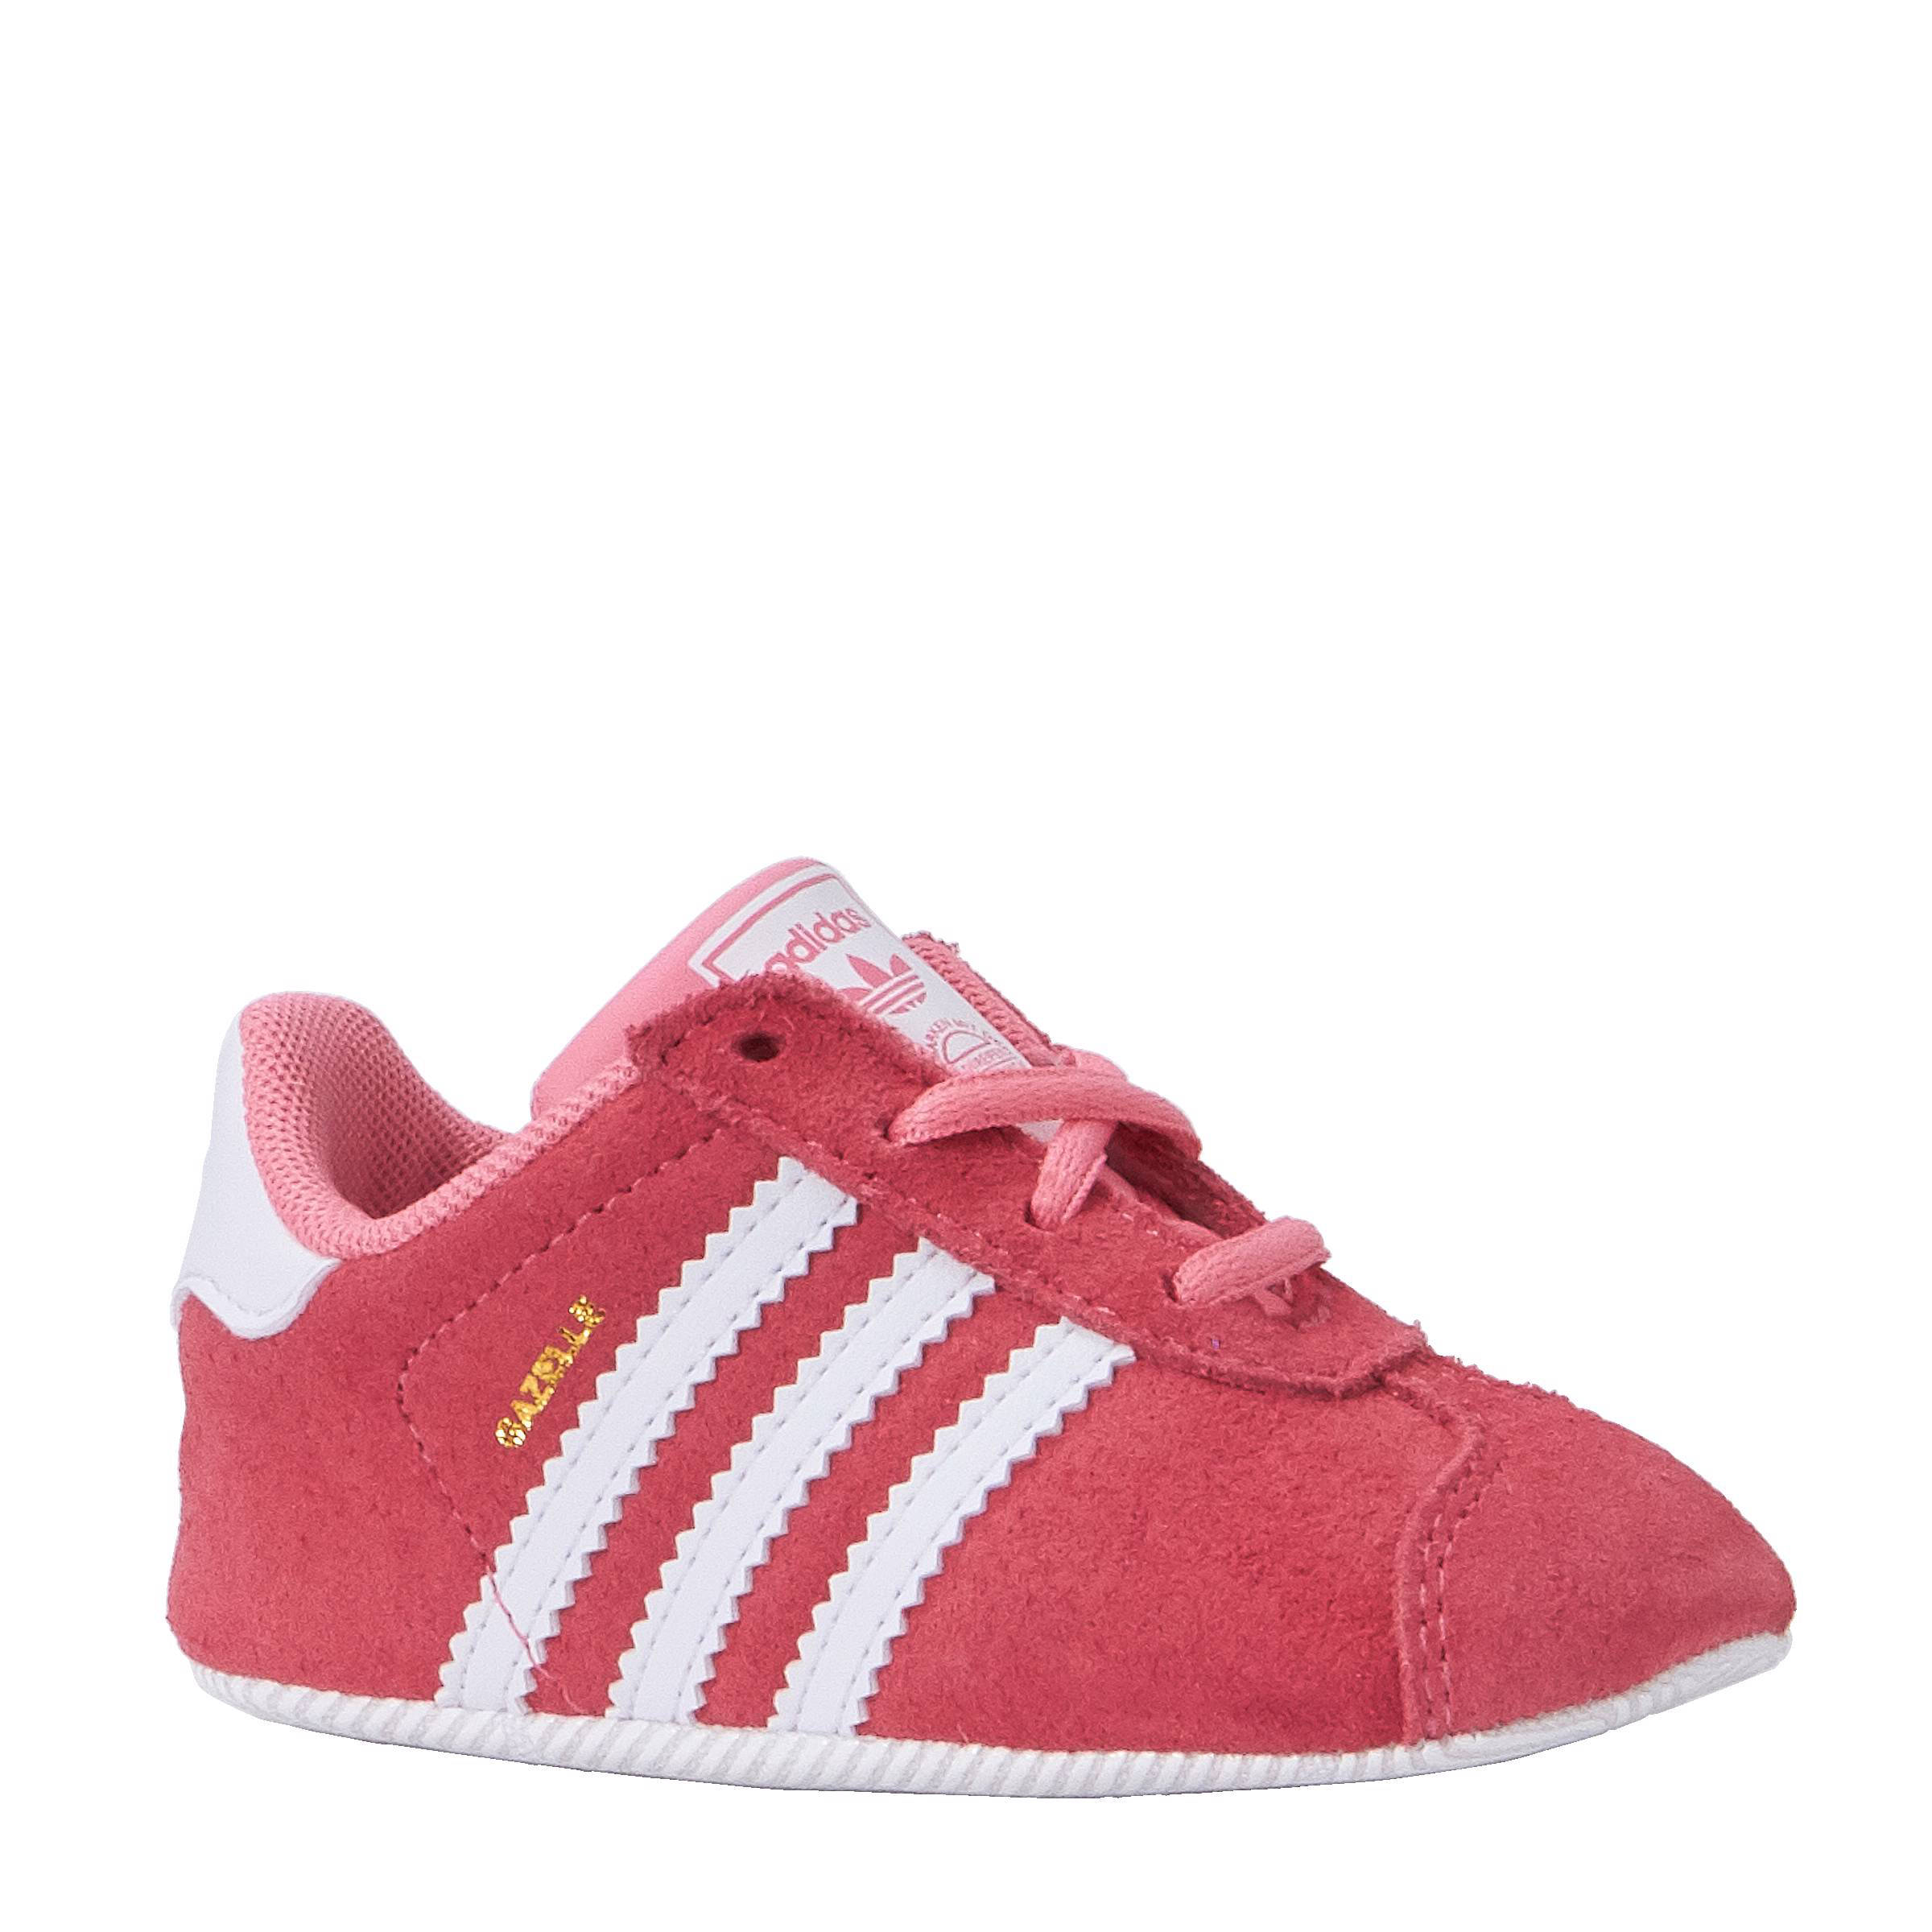 Gazelle CRIB Crib sneakers